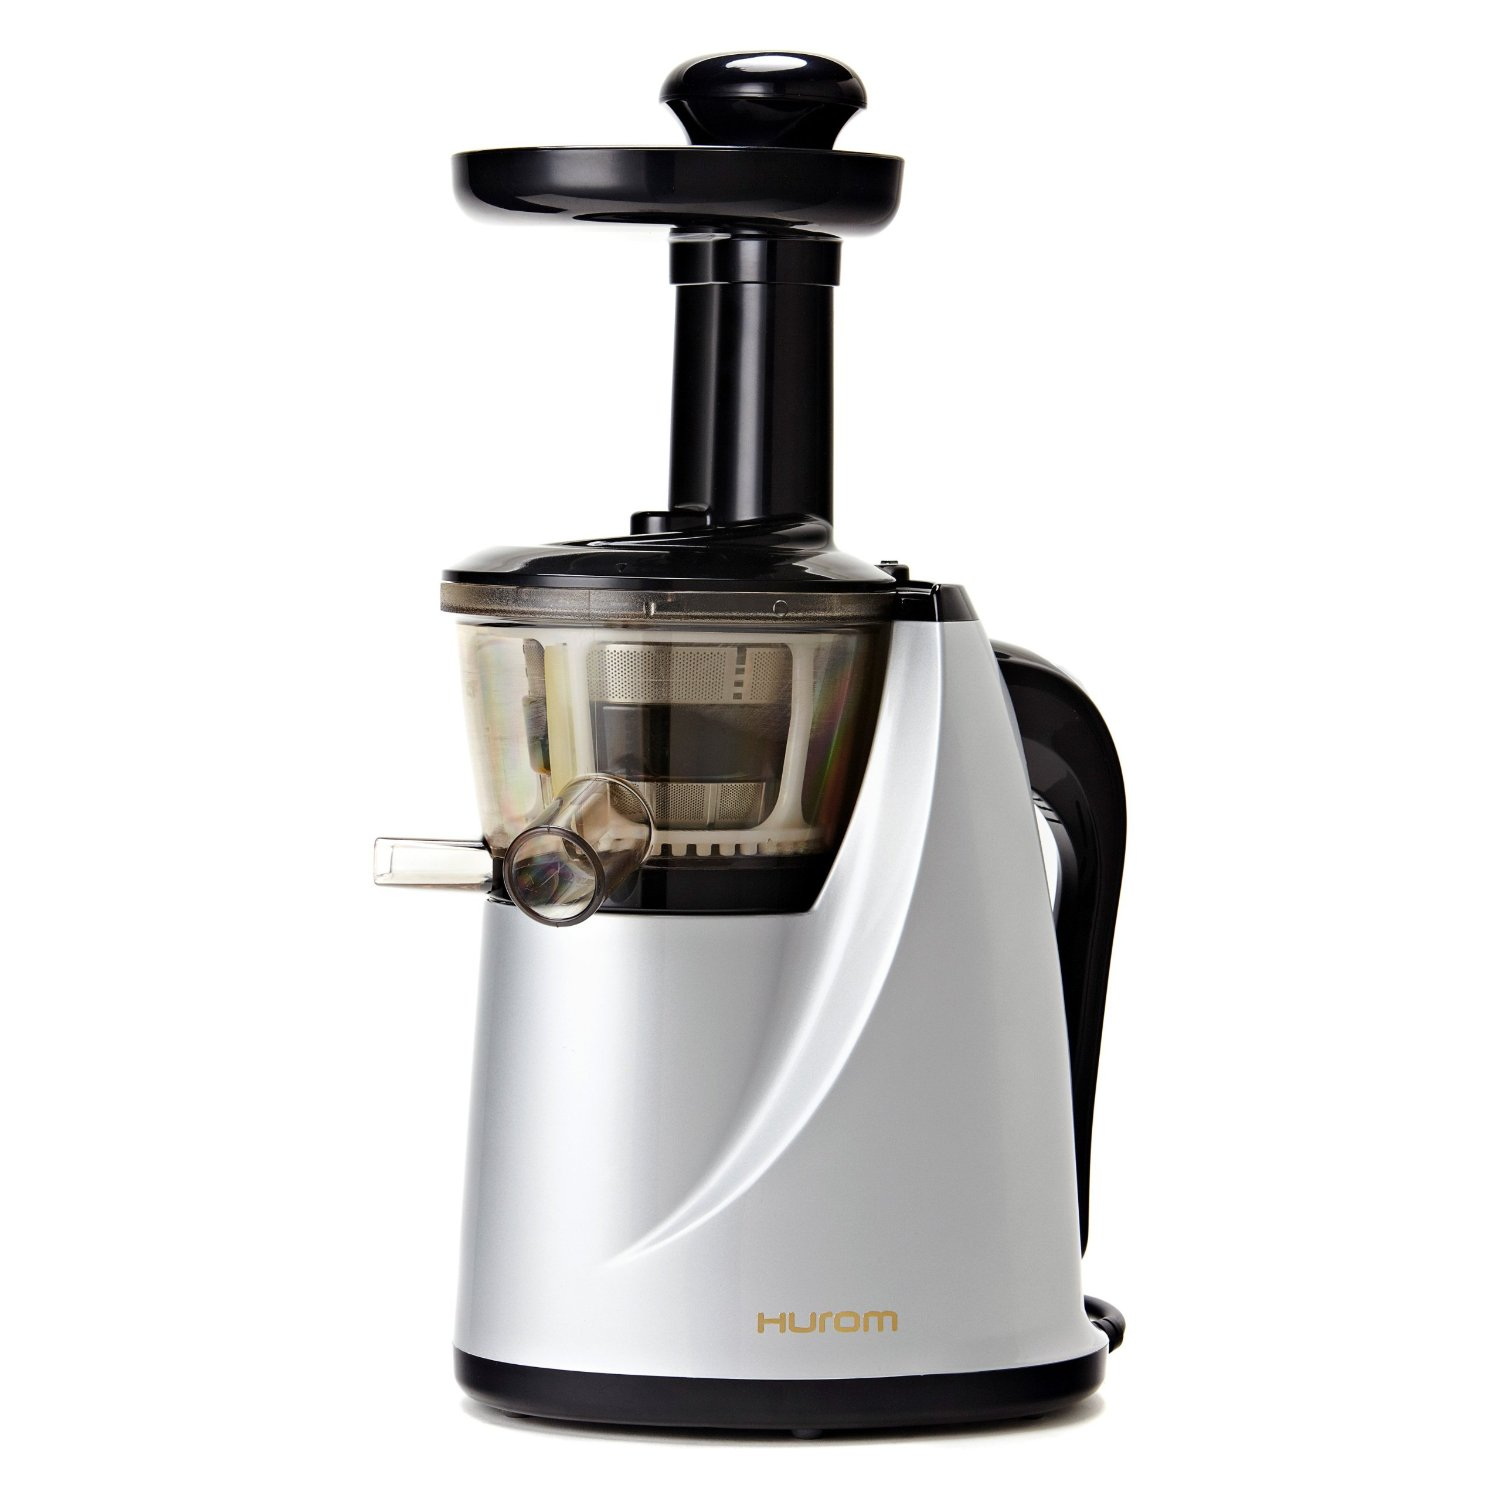 Hurom Slow Juicer Fiyat : Hurom HU-100 Masticating Slow Juicer Review - Best Cold Press Juicers